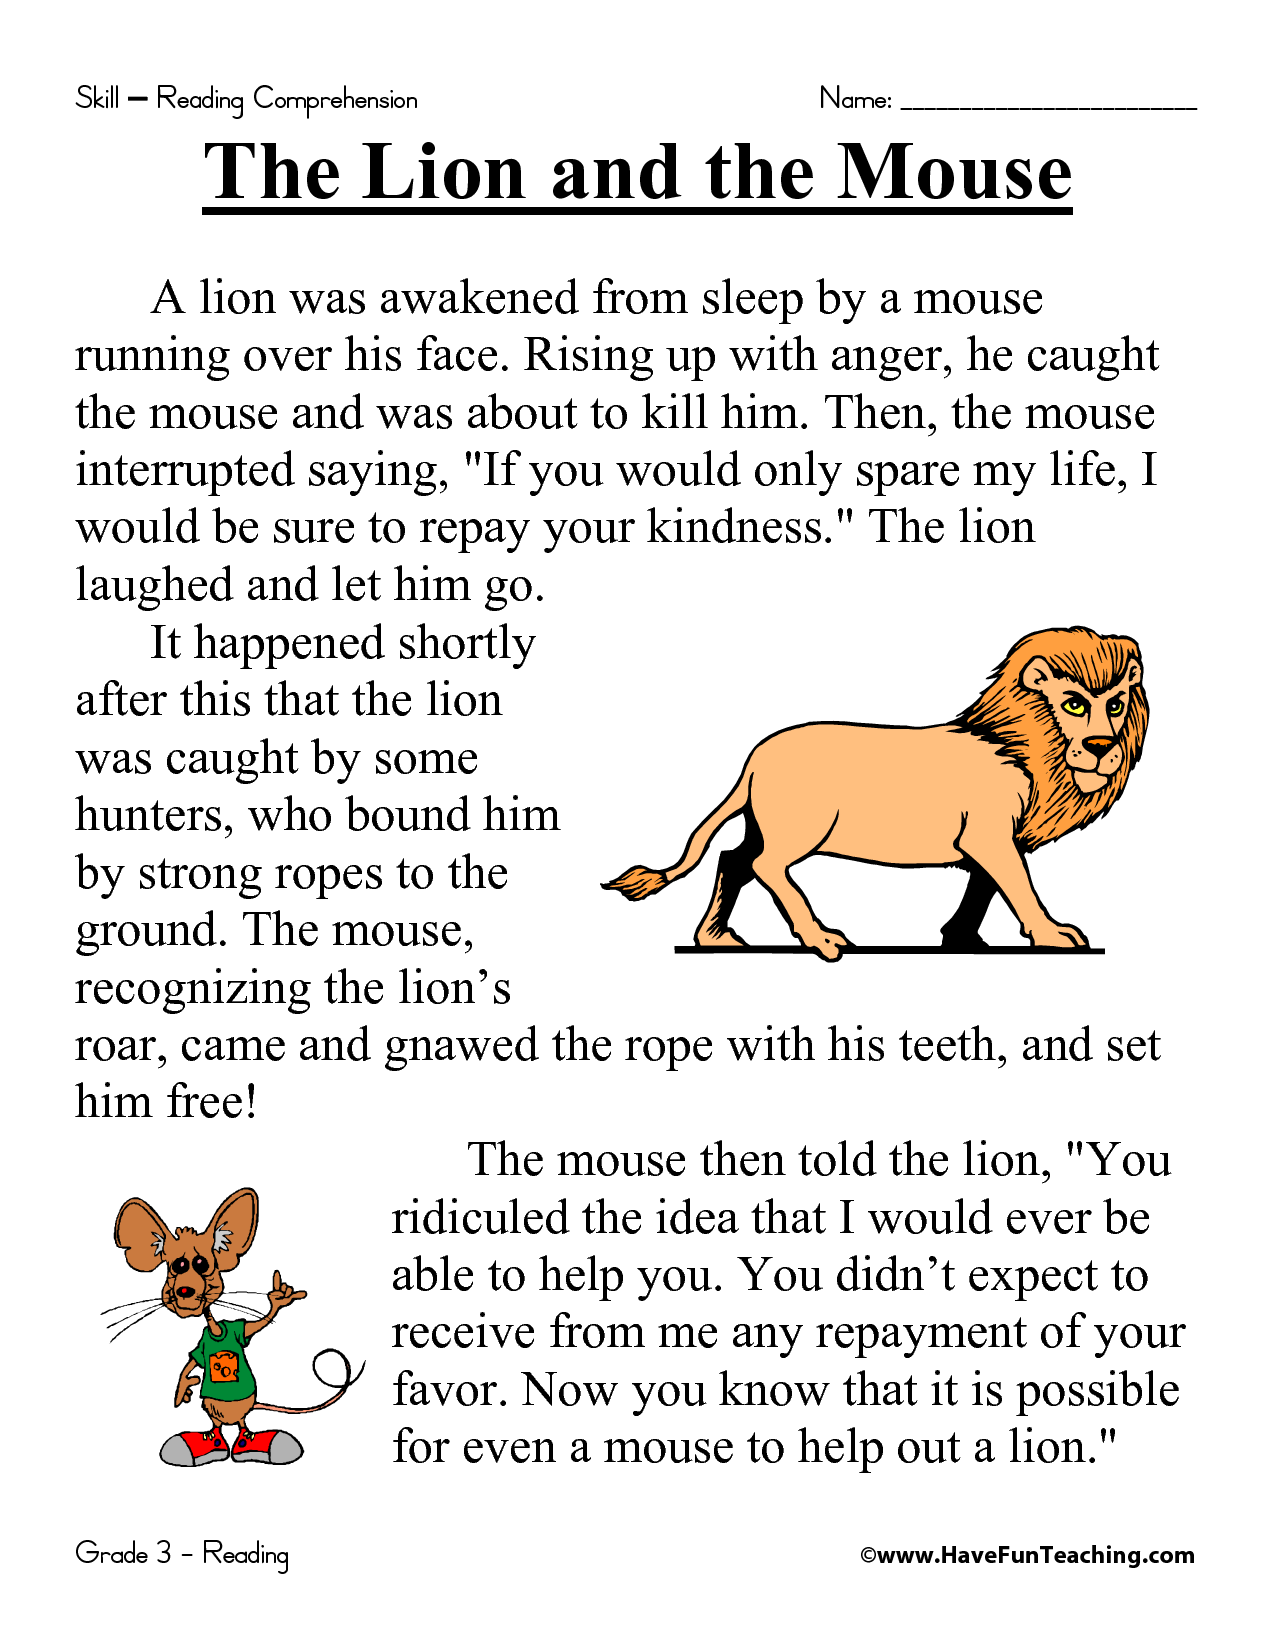 Worksheet Elementary Reading Comprehension Test printable reading comprehension worksheets inc exercises for first grade the lion and mouse worksheet